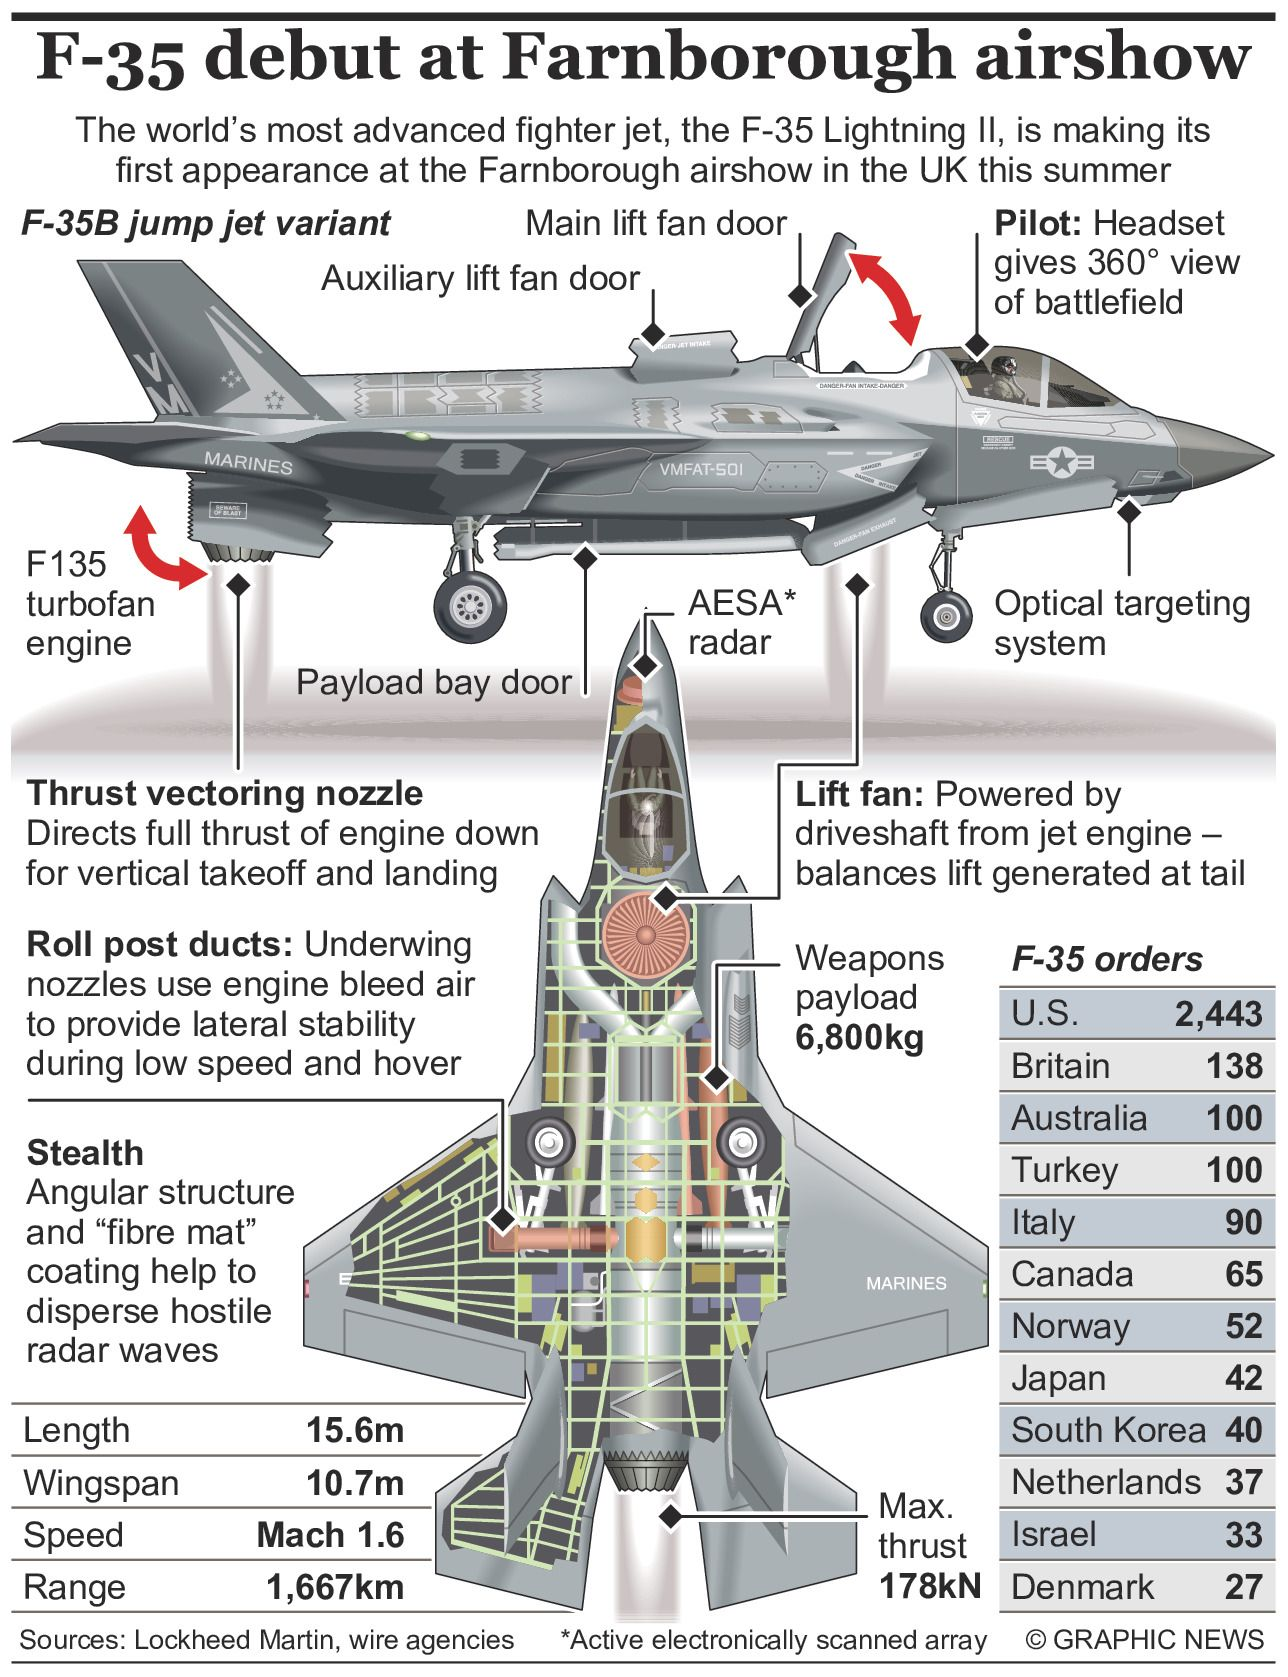 Pin by Bruce Craig on Aviation | Fighter jets, Airplane